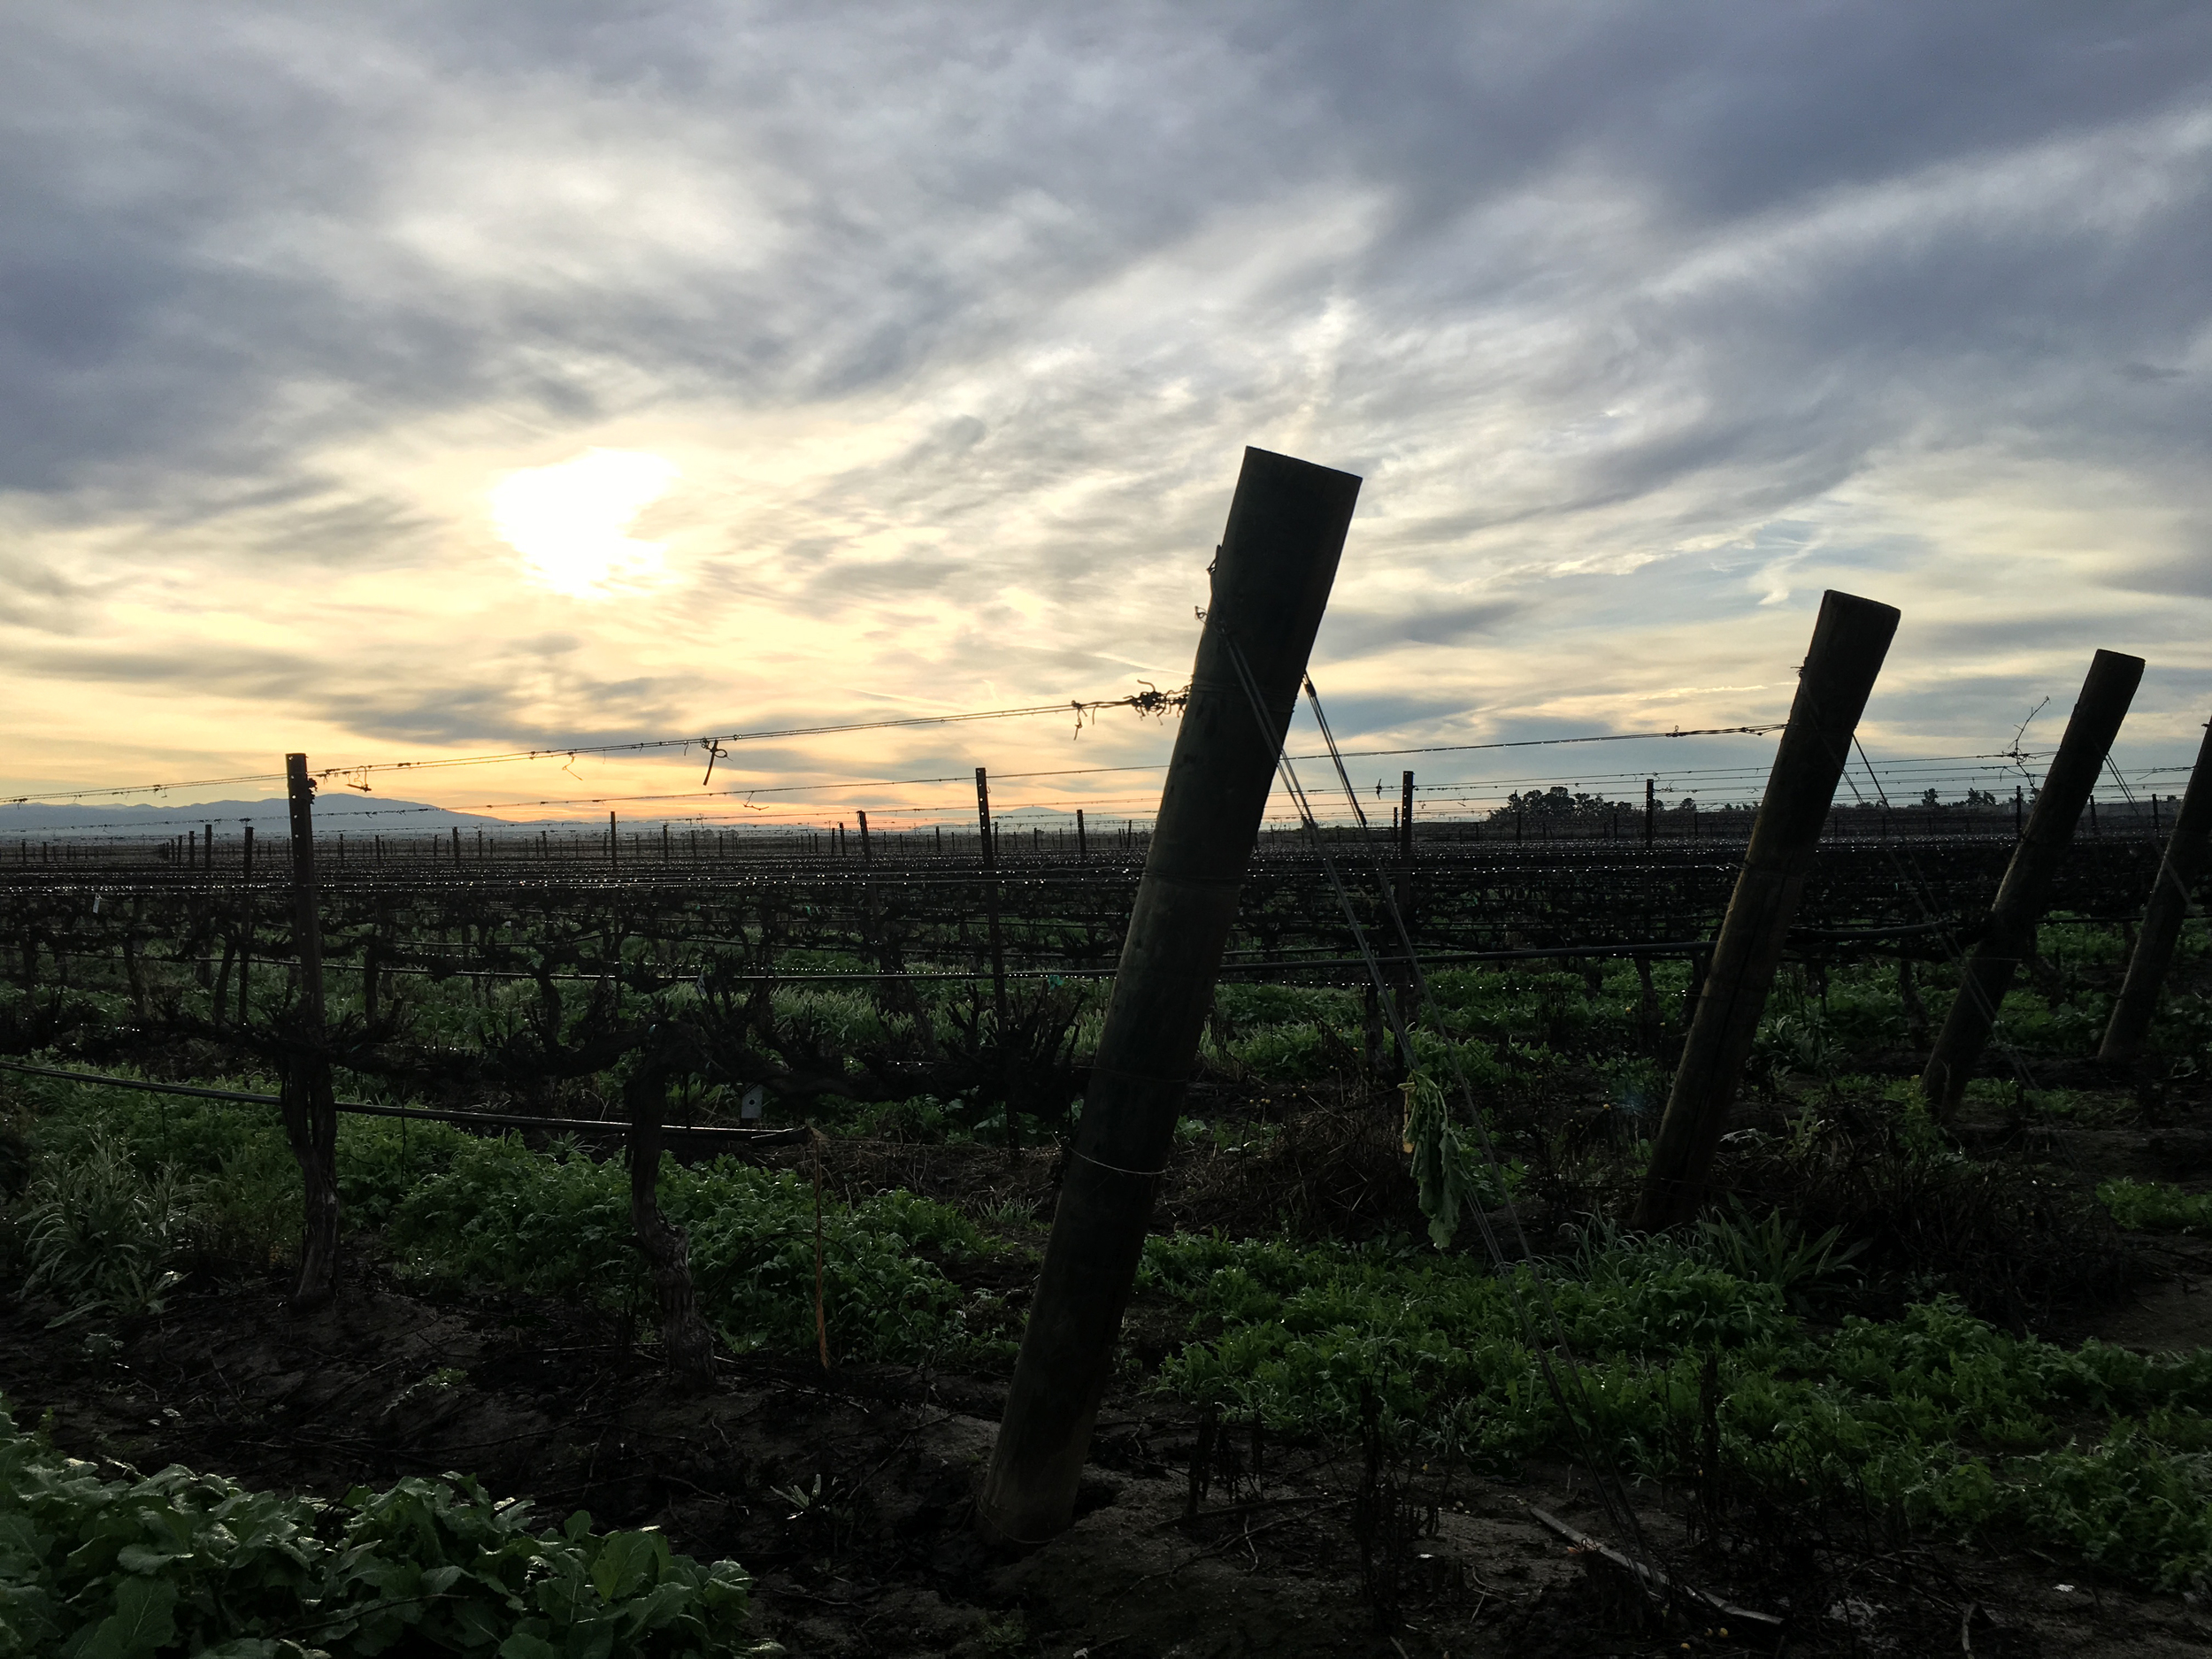 Our Pinot Grigio vineyard in the Winter